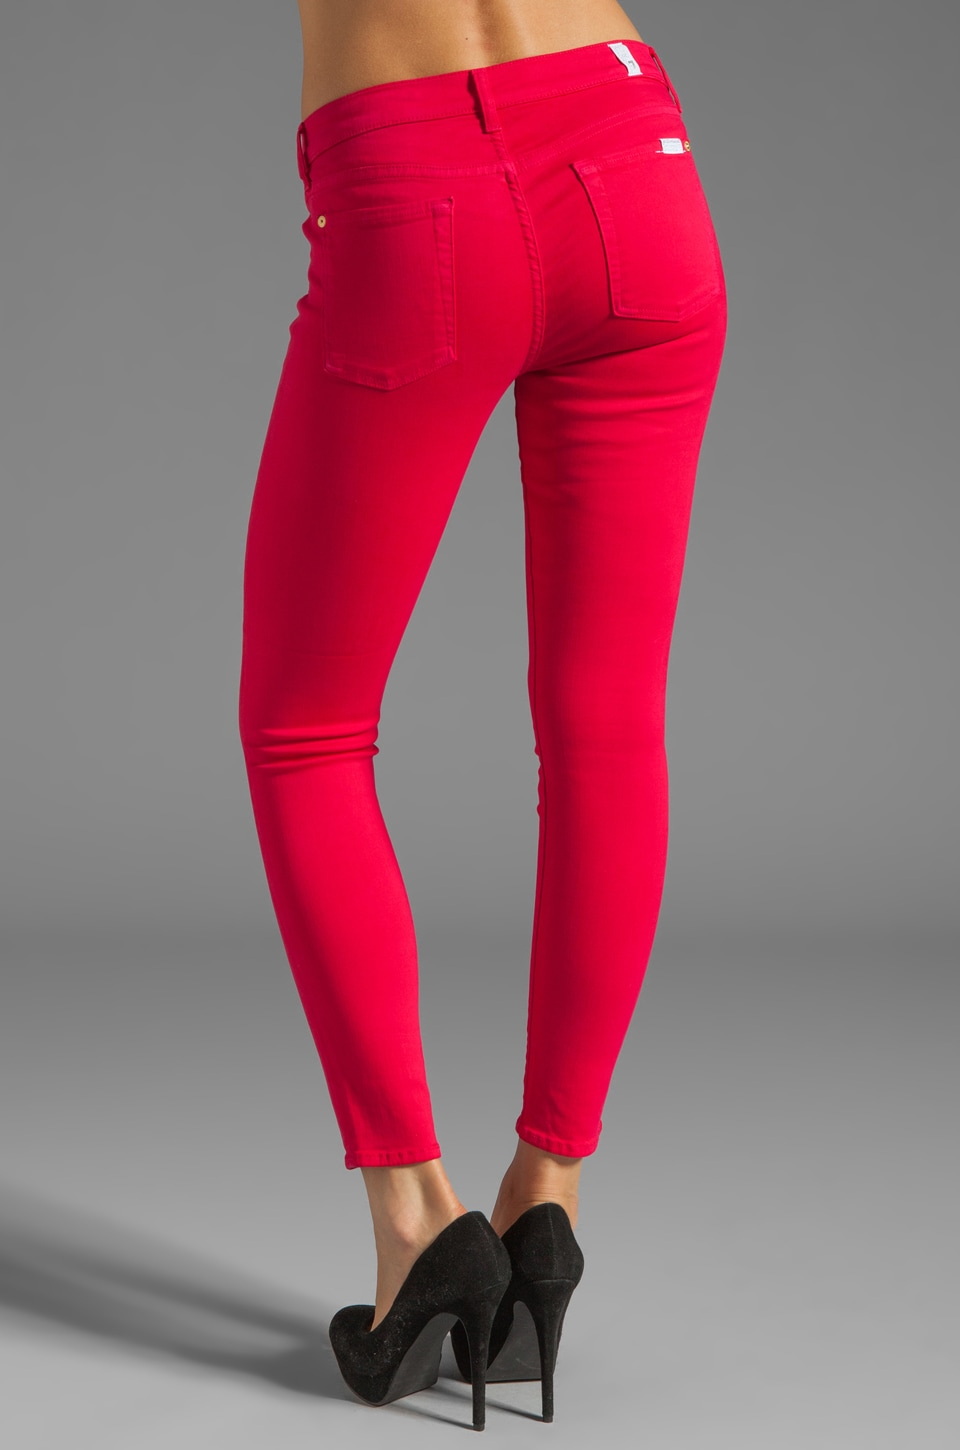 7 For All Mankind The Cropped Skinny in Hot Fuchsia